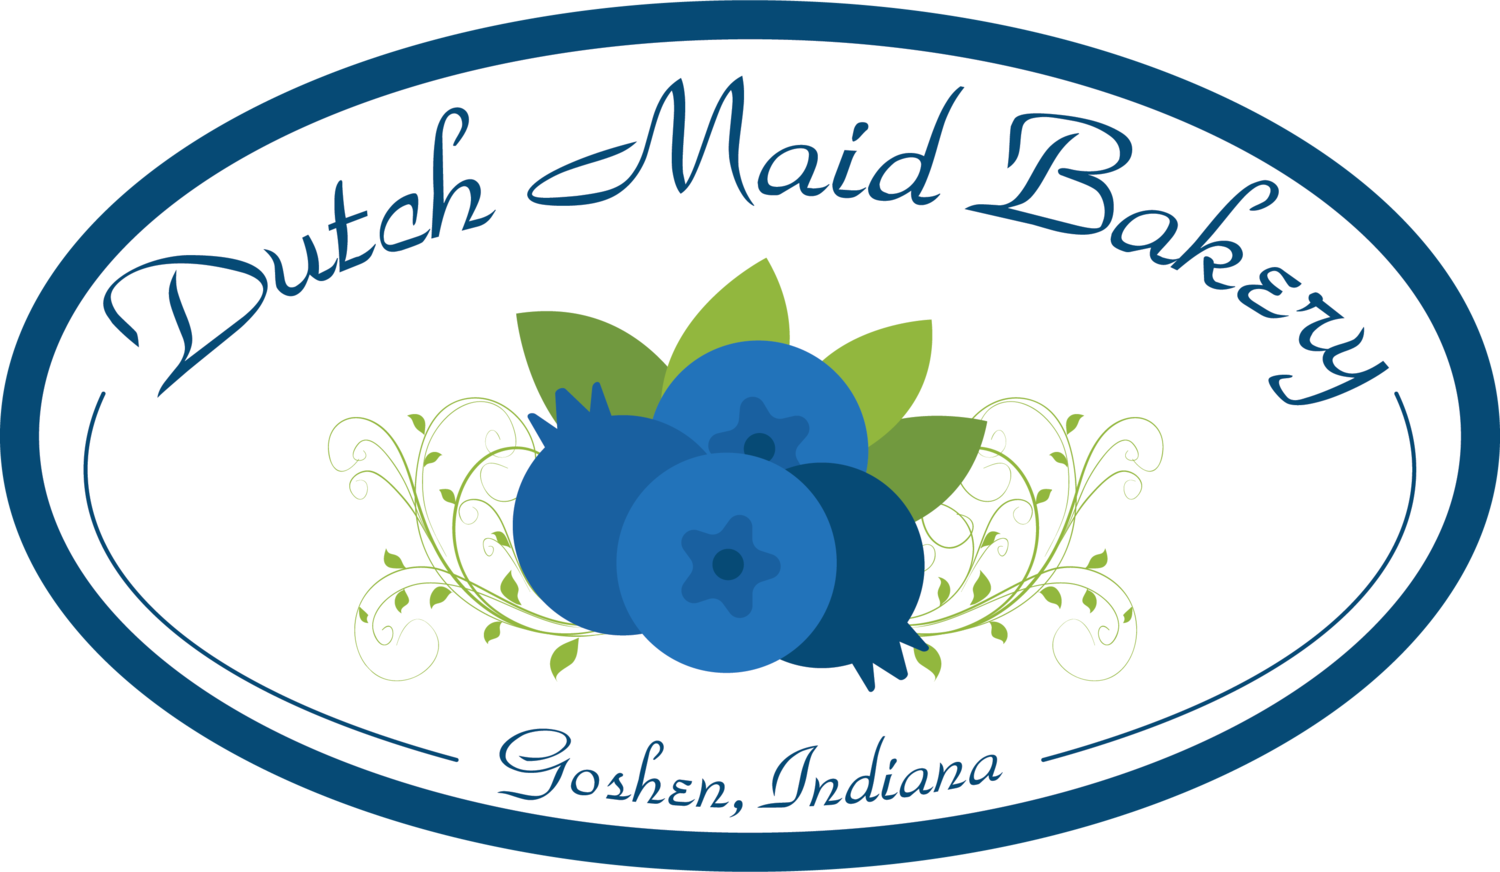 Dutch Maid Bakery